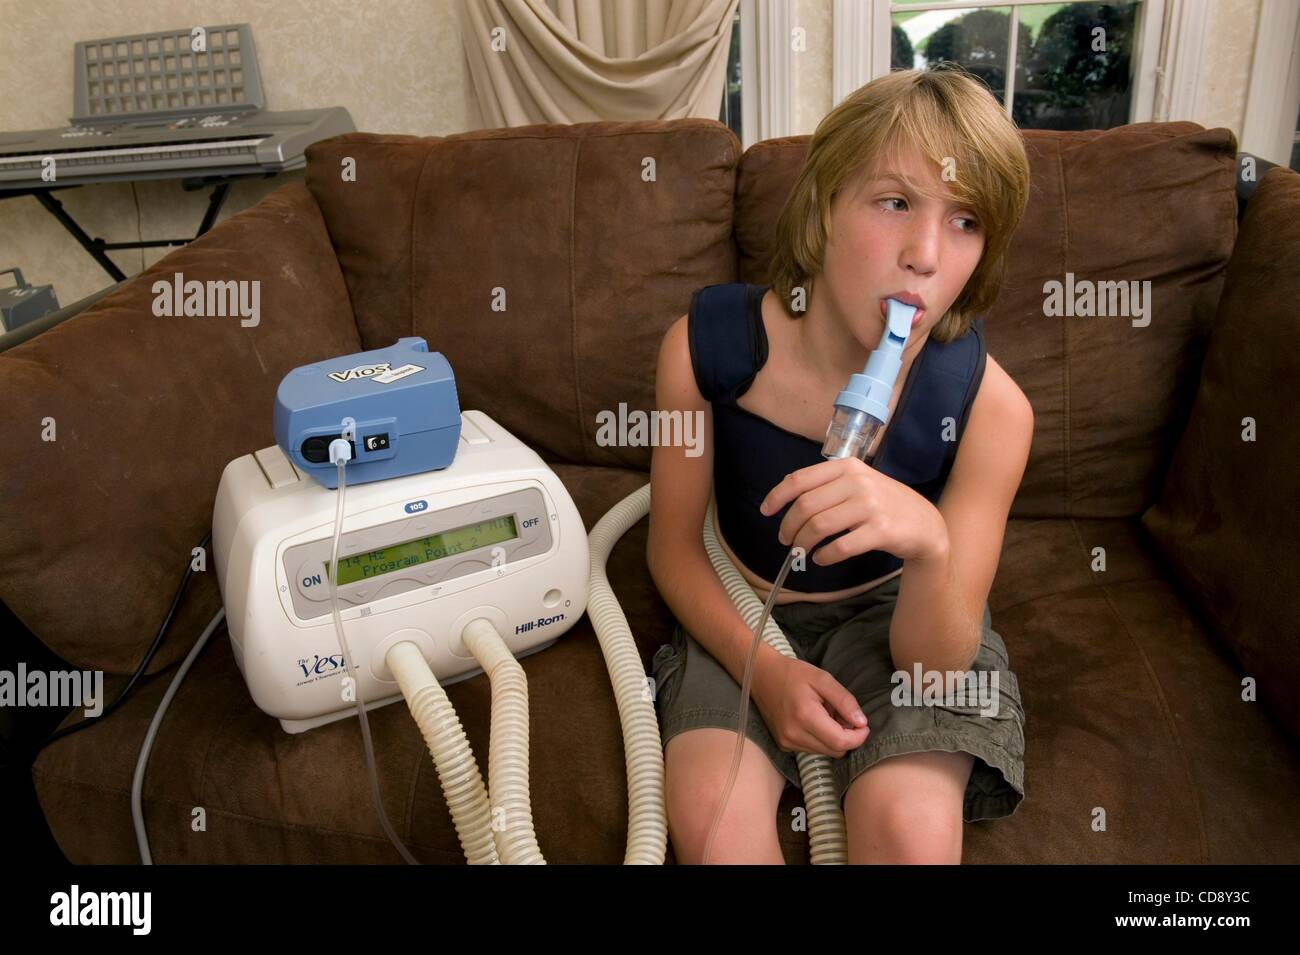 Jun 12, 2010 - Roswell, Georgia, U.S. - GAVIN BAKER, 11, takes one of his twice-daily percussion and breathing treatments - Stock Image